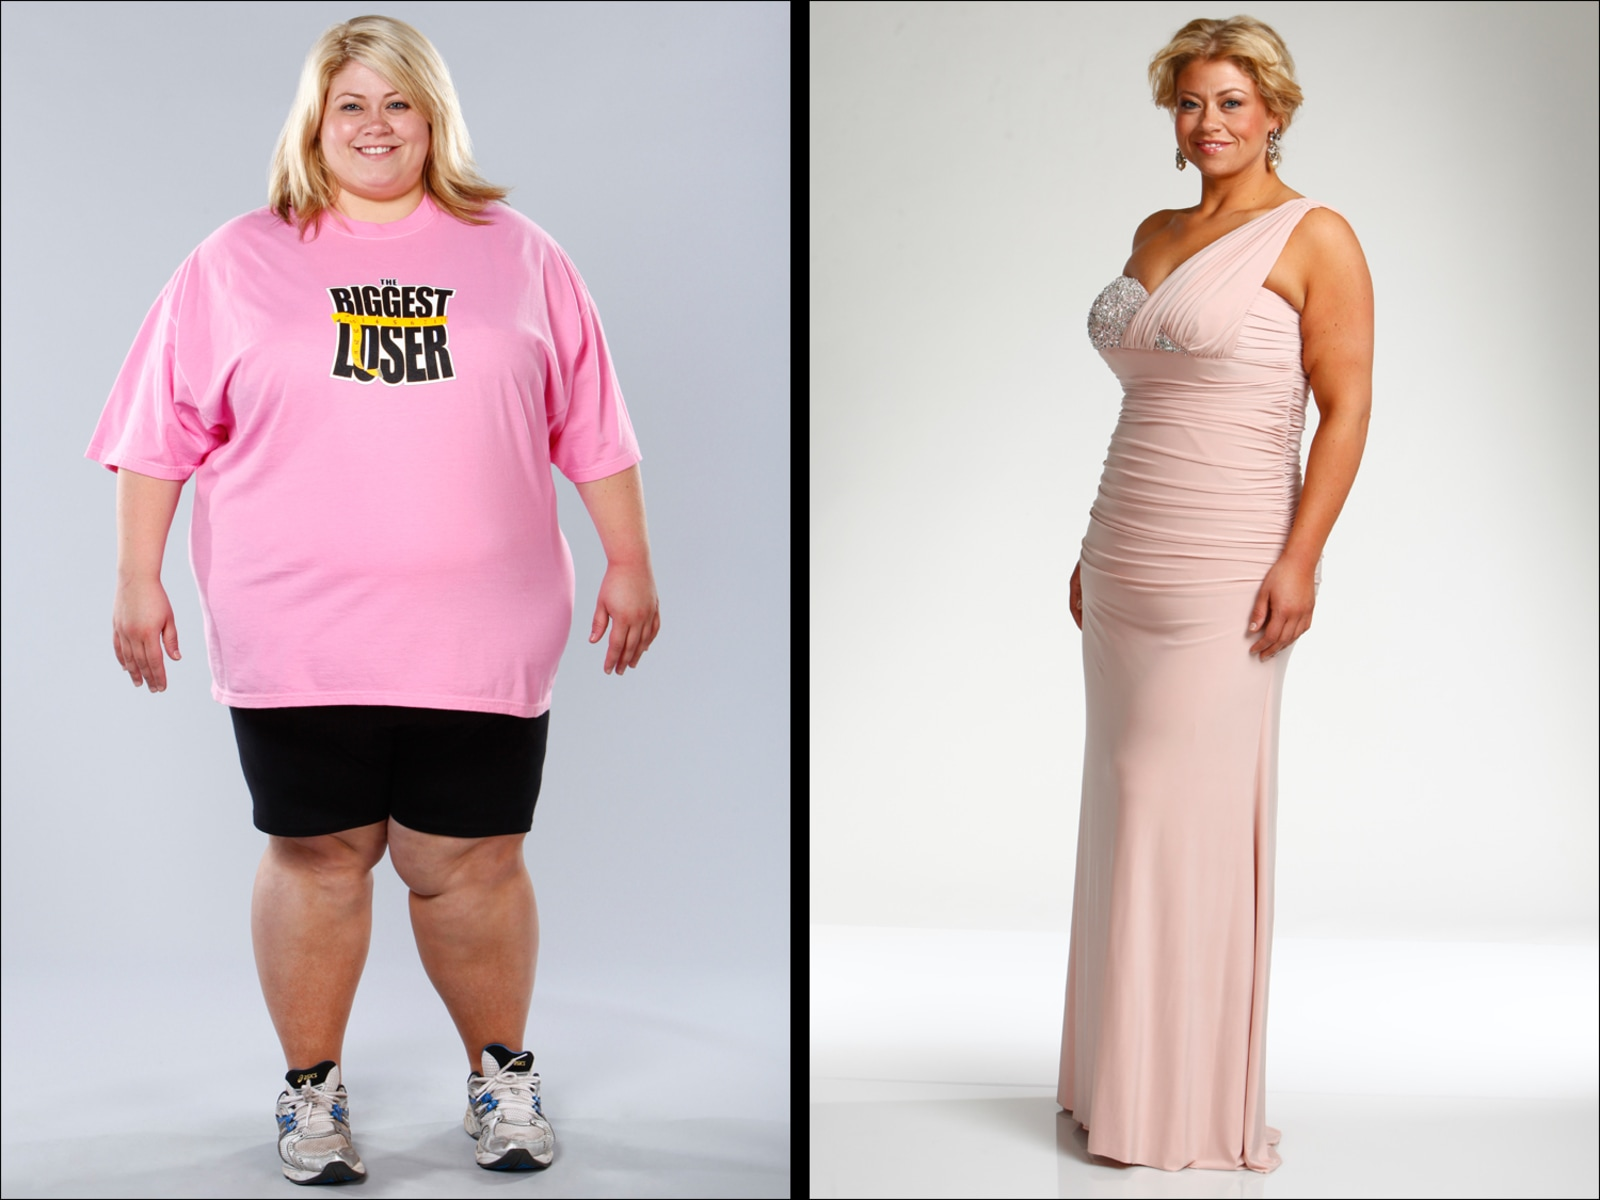 lizzeth biggest loser height and weight